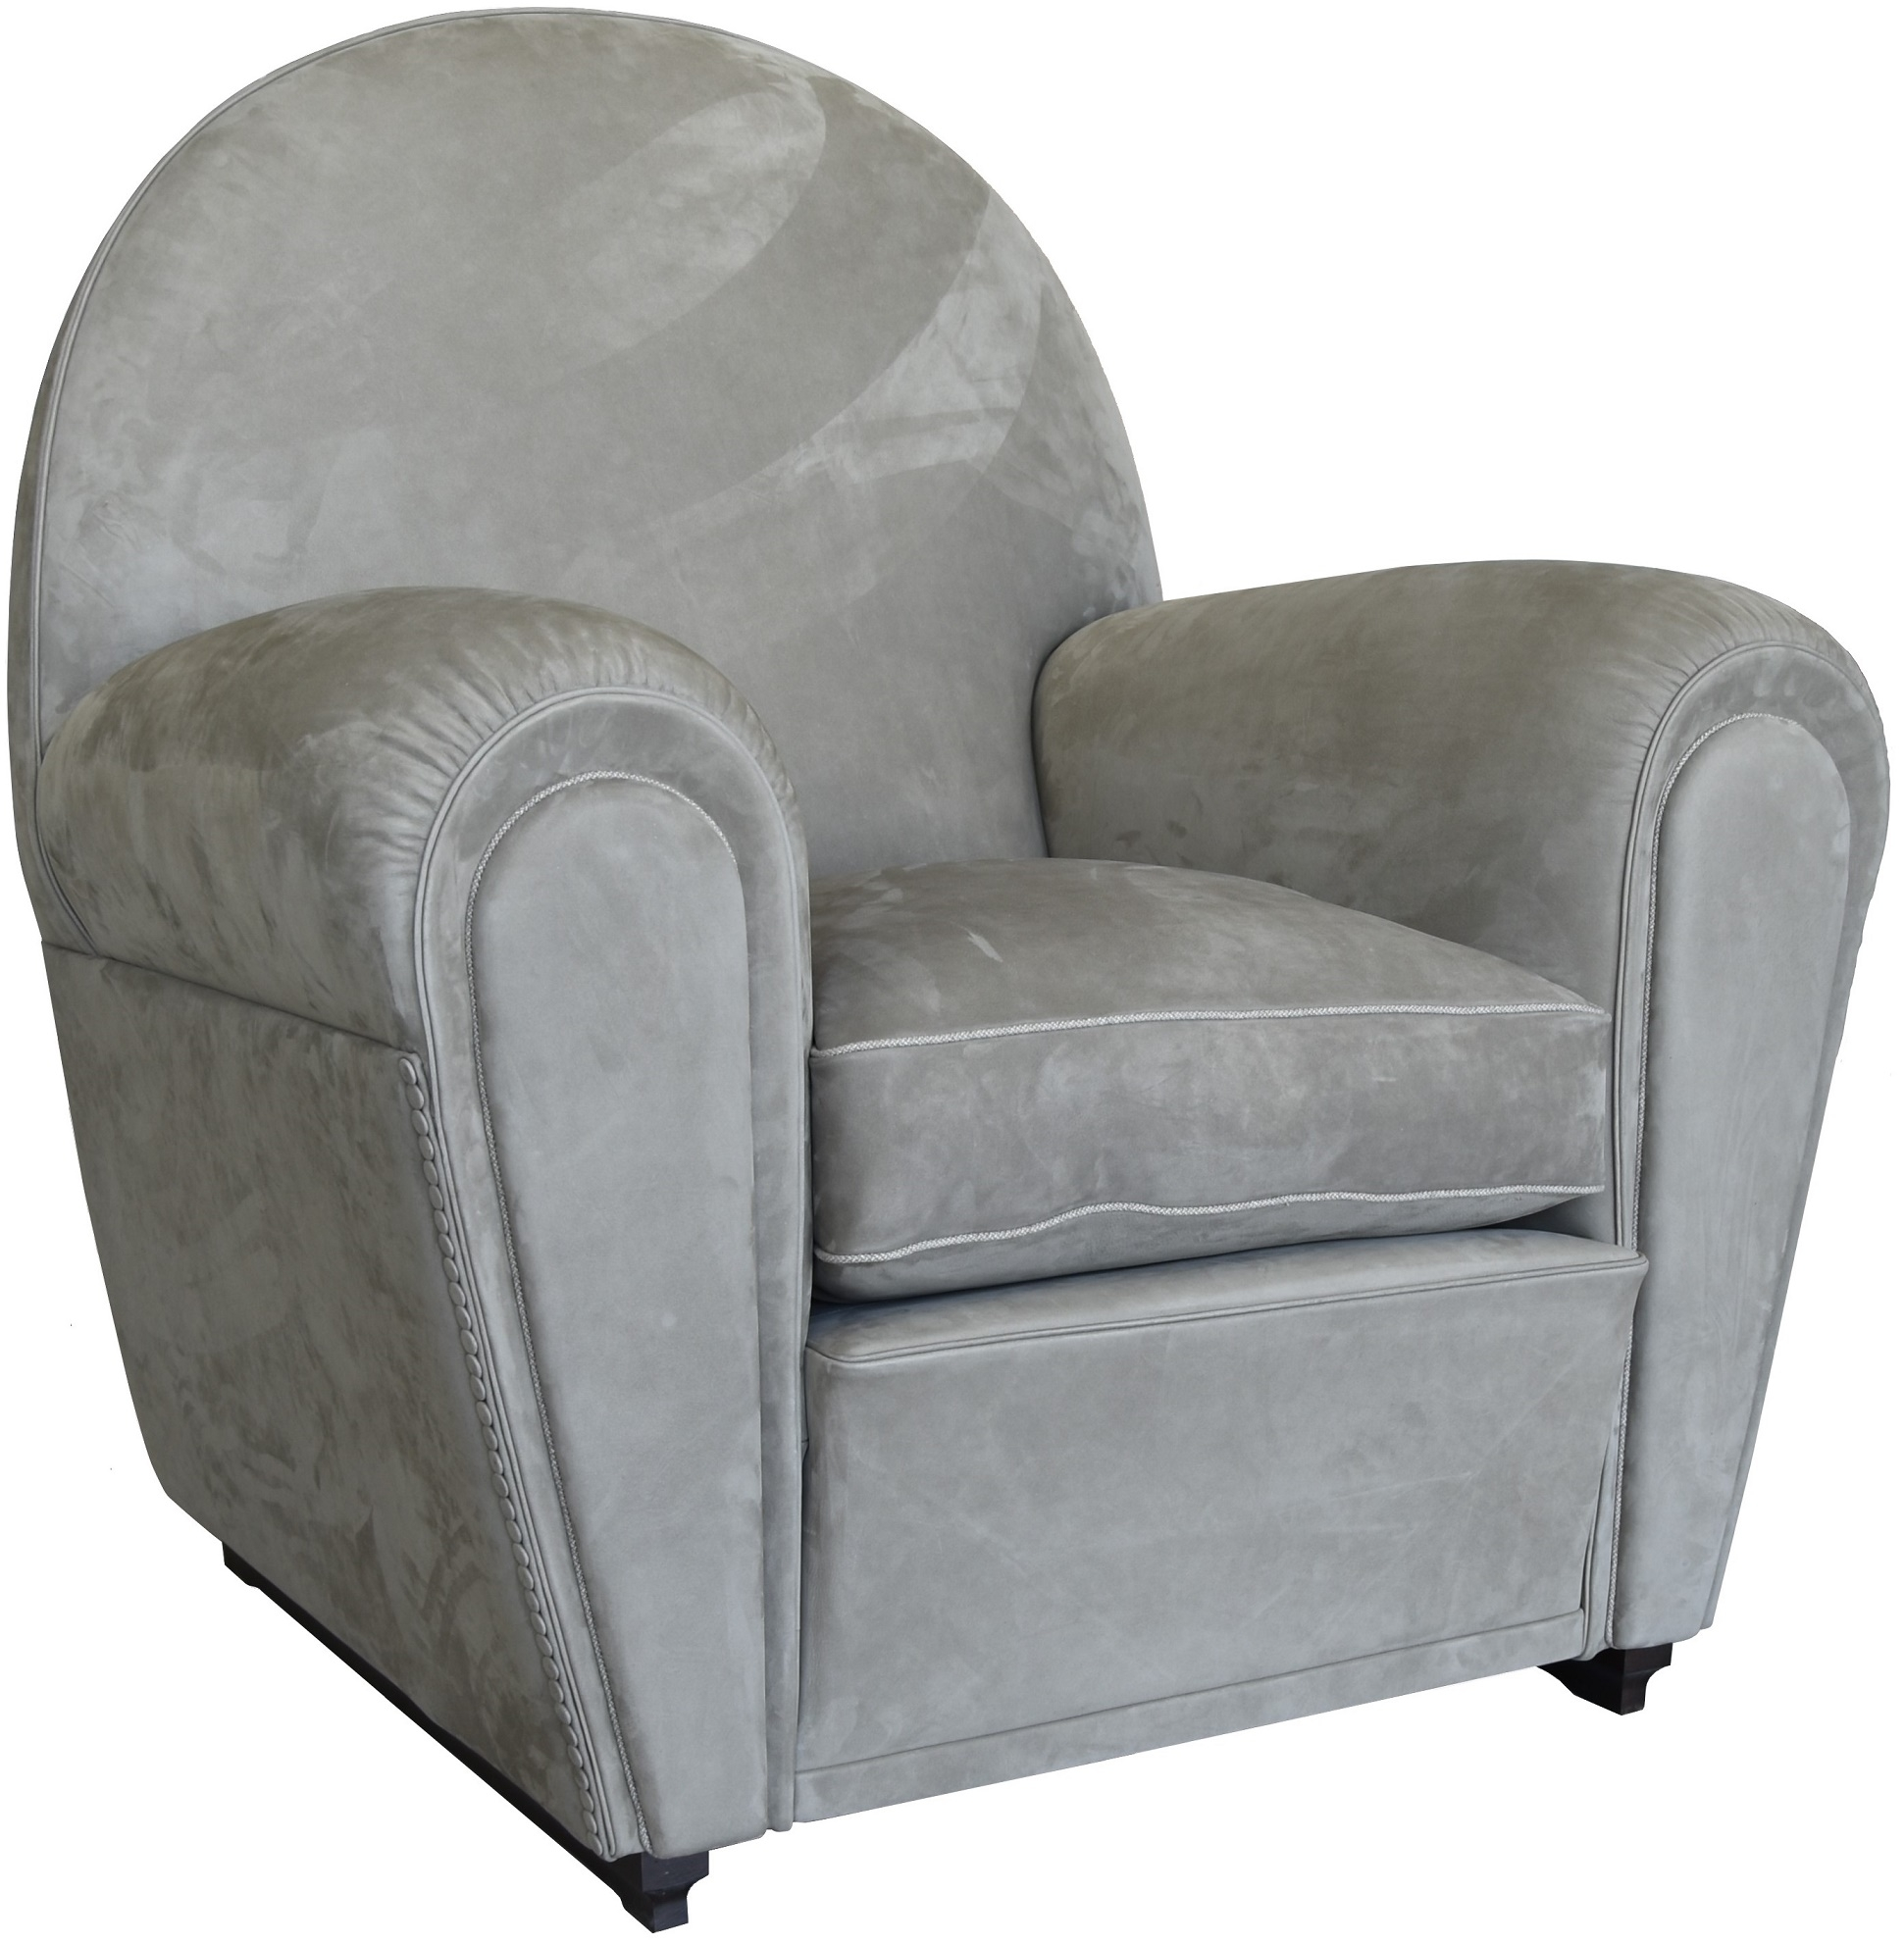 Awesome vanity fair limited edition poltrona frau armchair for Poltrona frau outlet tolentino